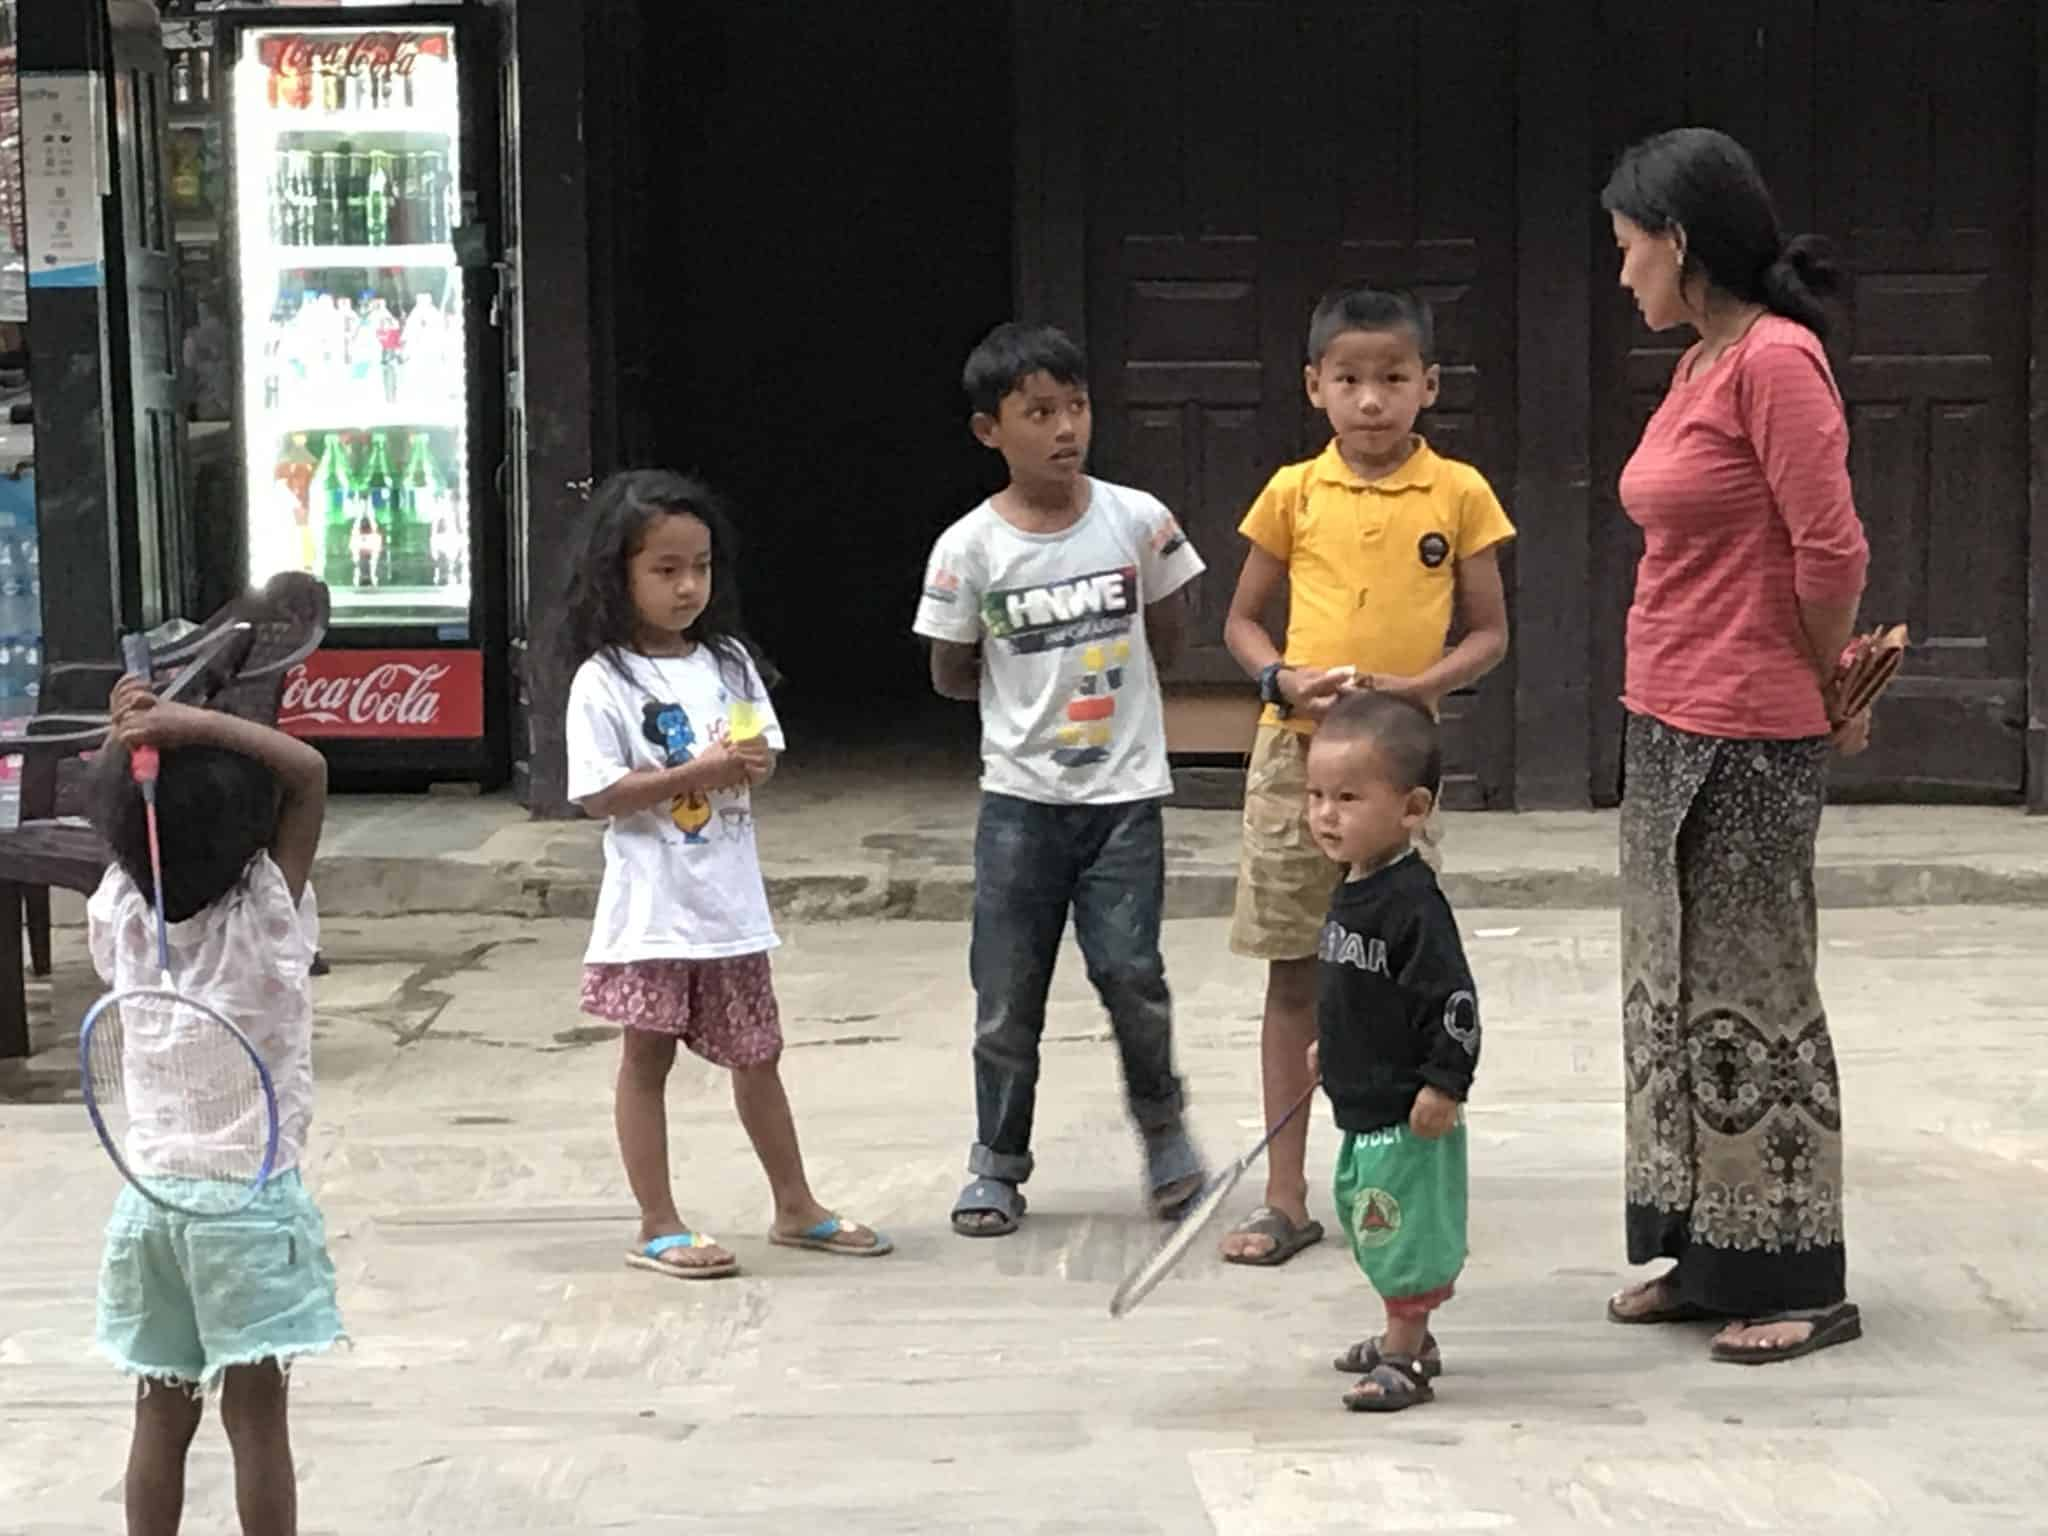 children playing on the street